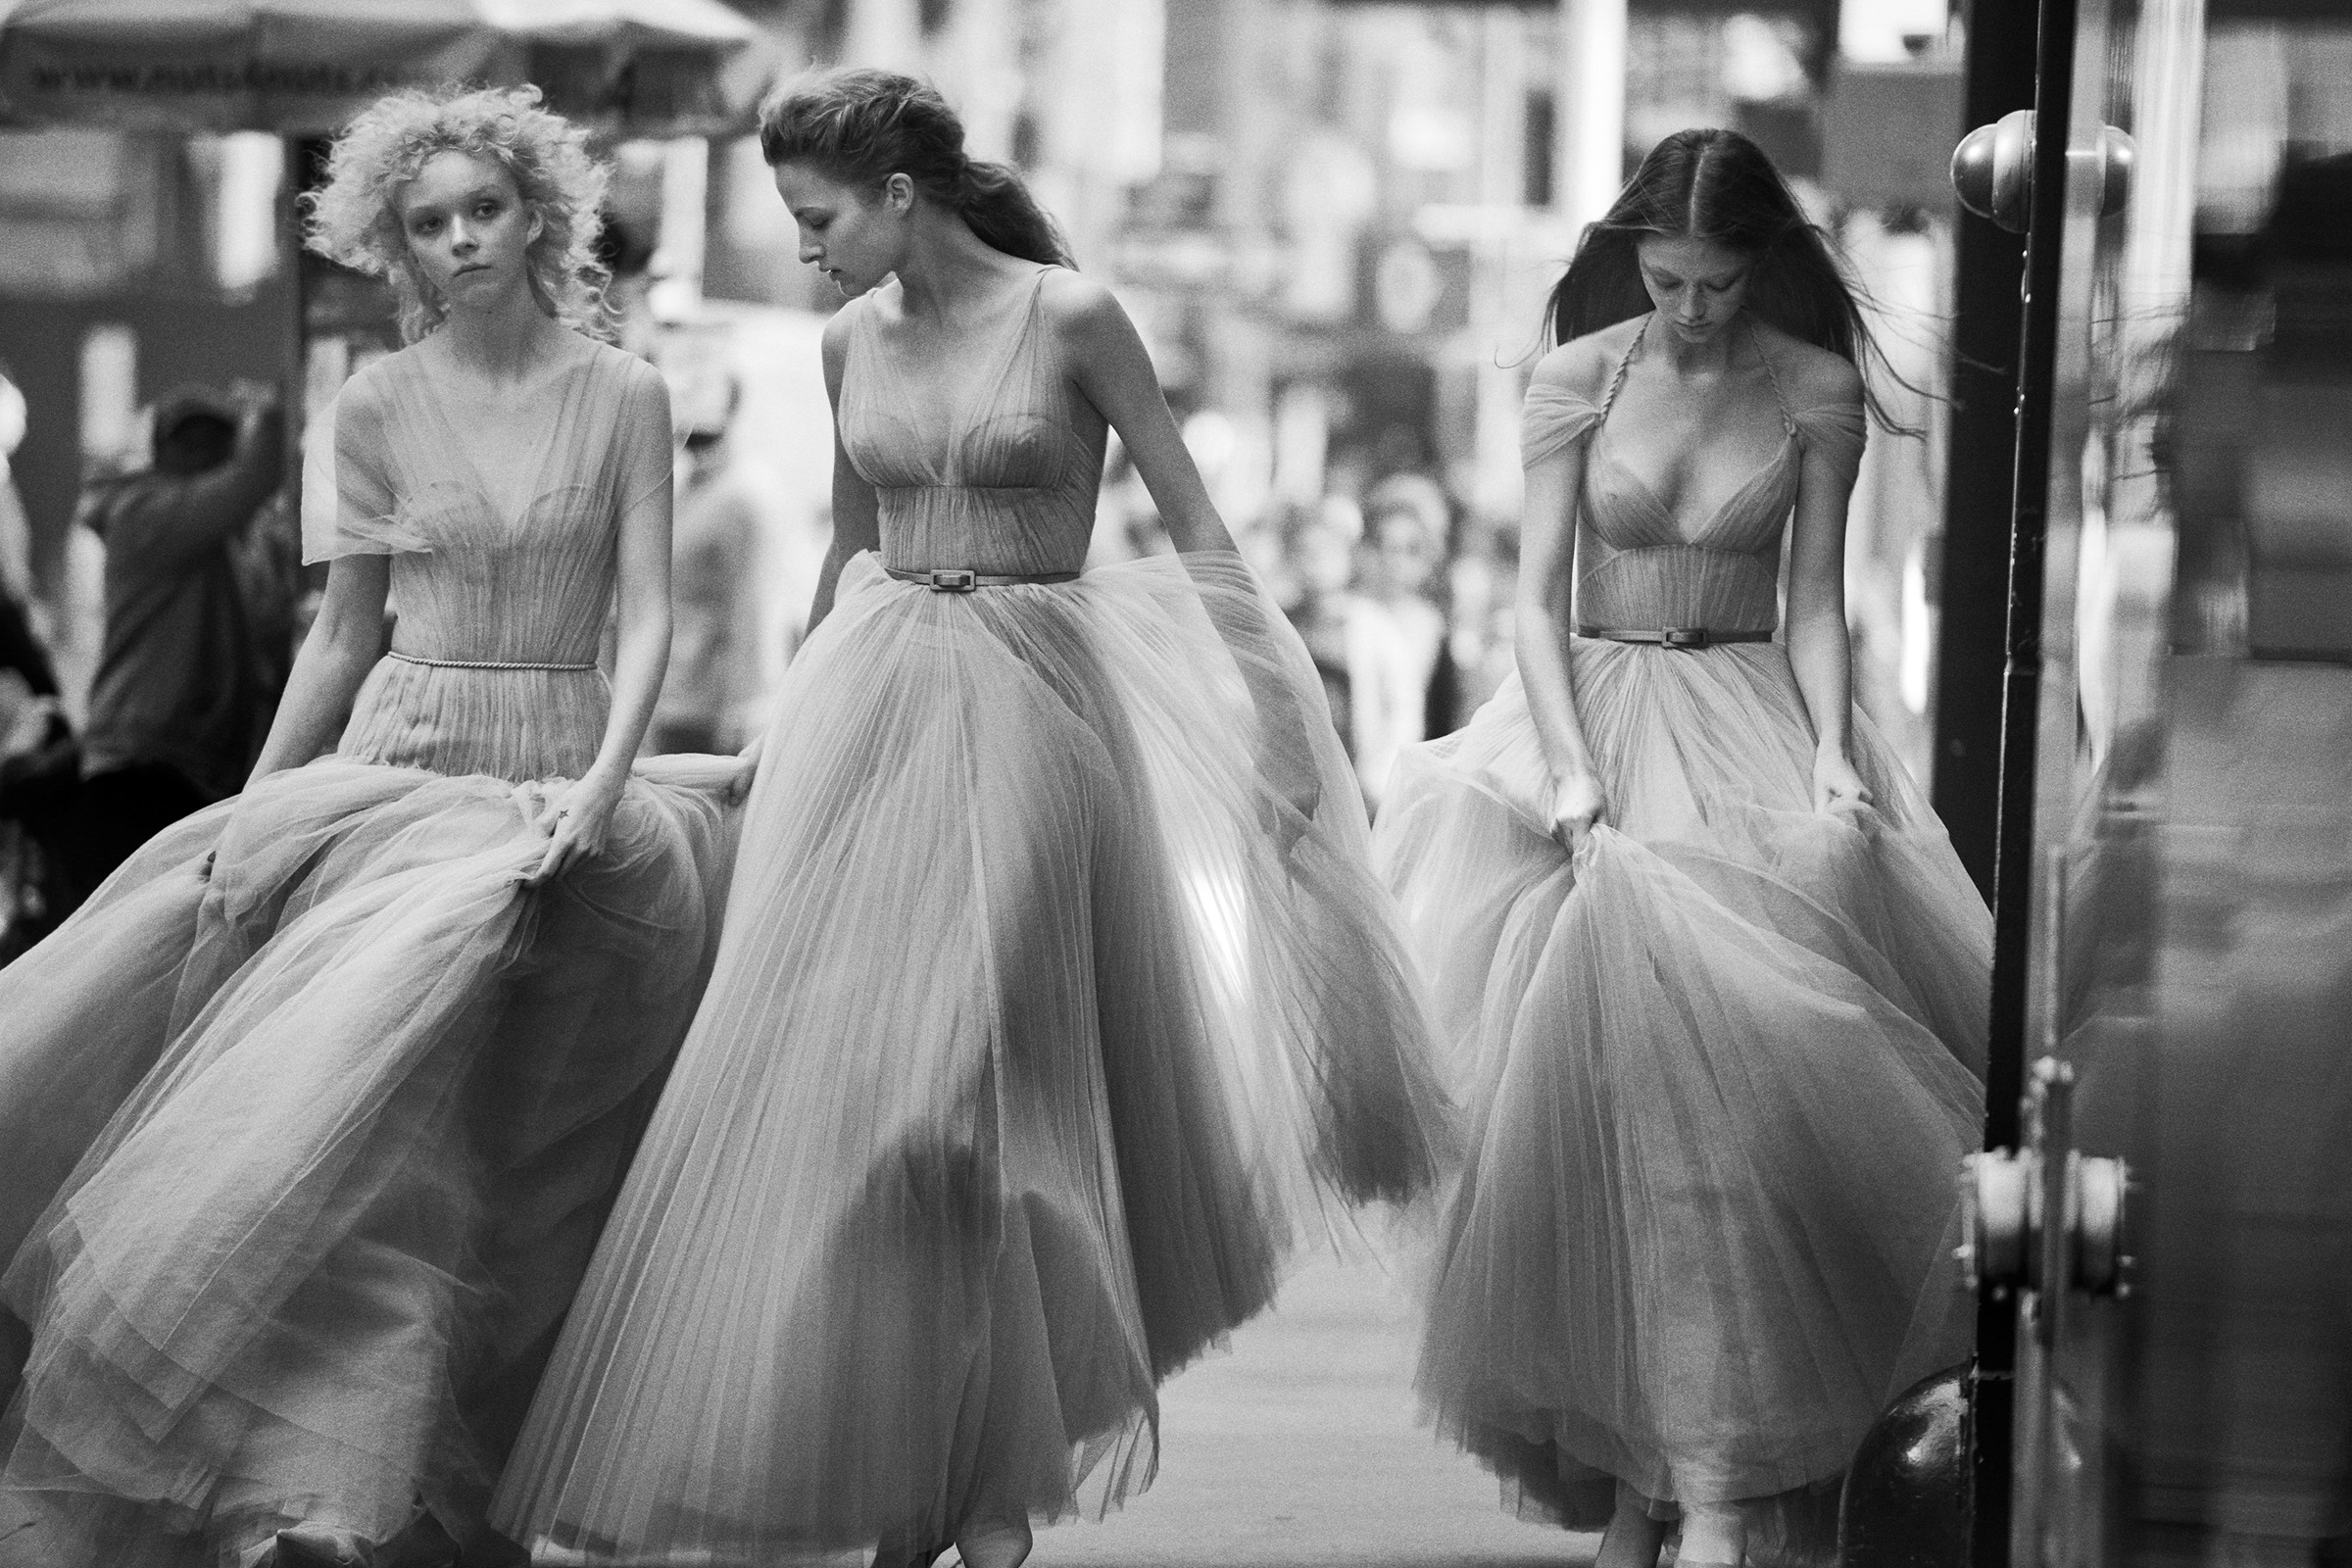 Dior Celebrates The Late Peter Lindbergh With 2-Volume Book Dior/Lindbergh